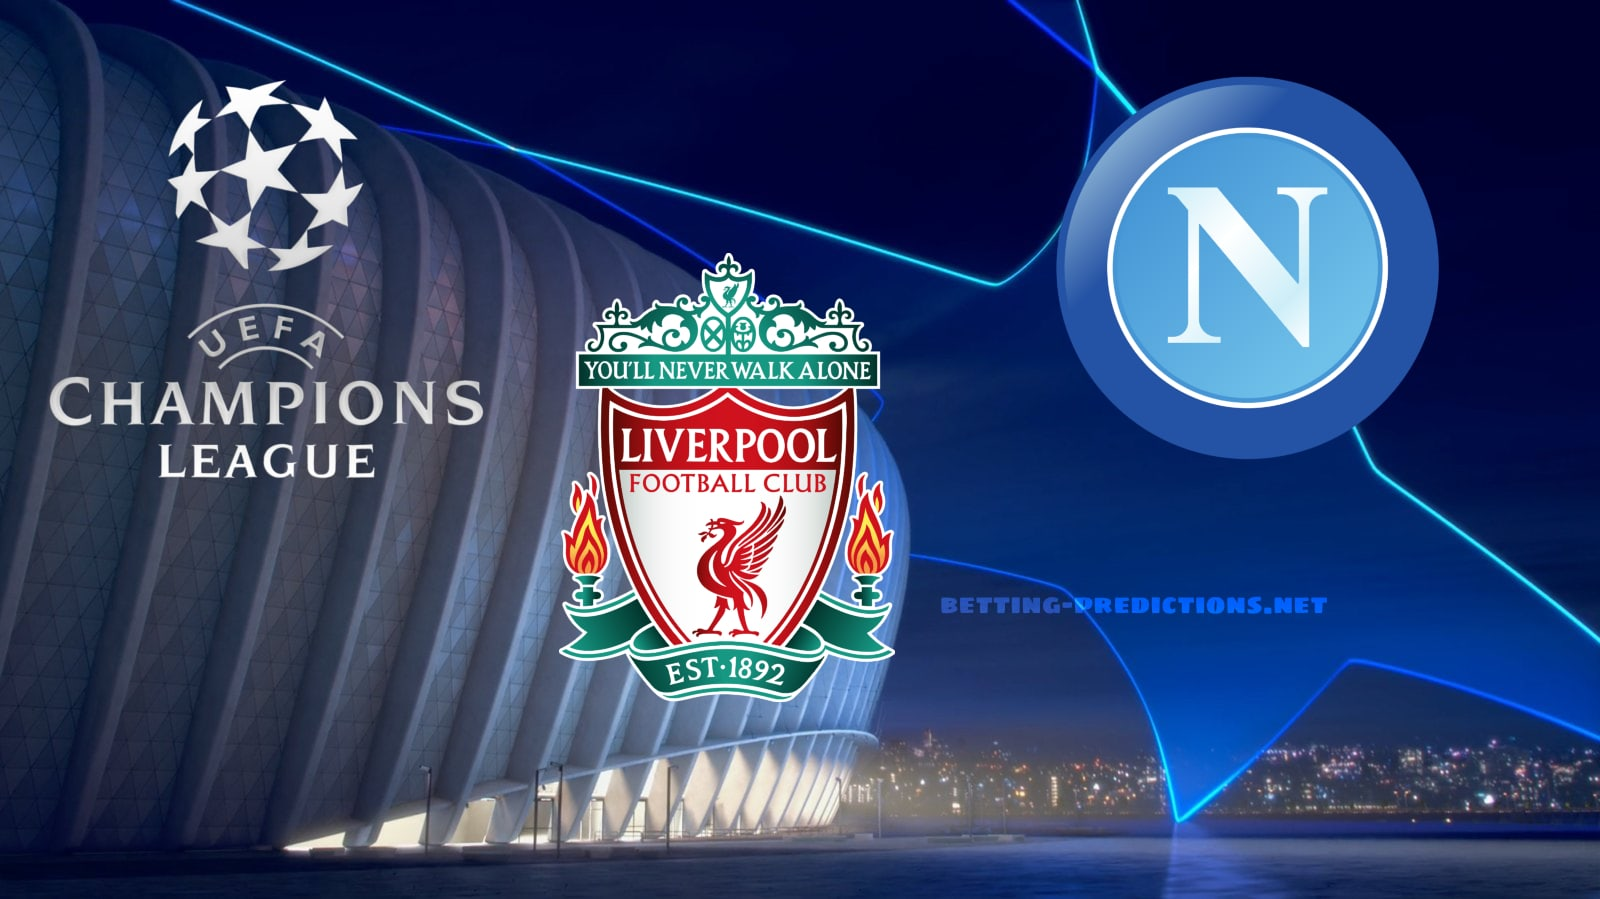 Champions League Liverpool vs Napoli